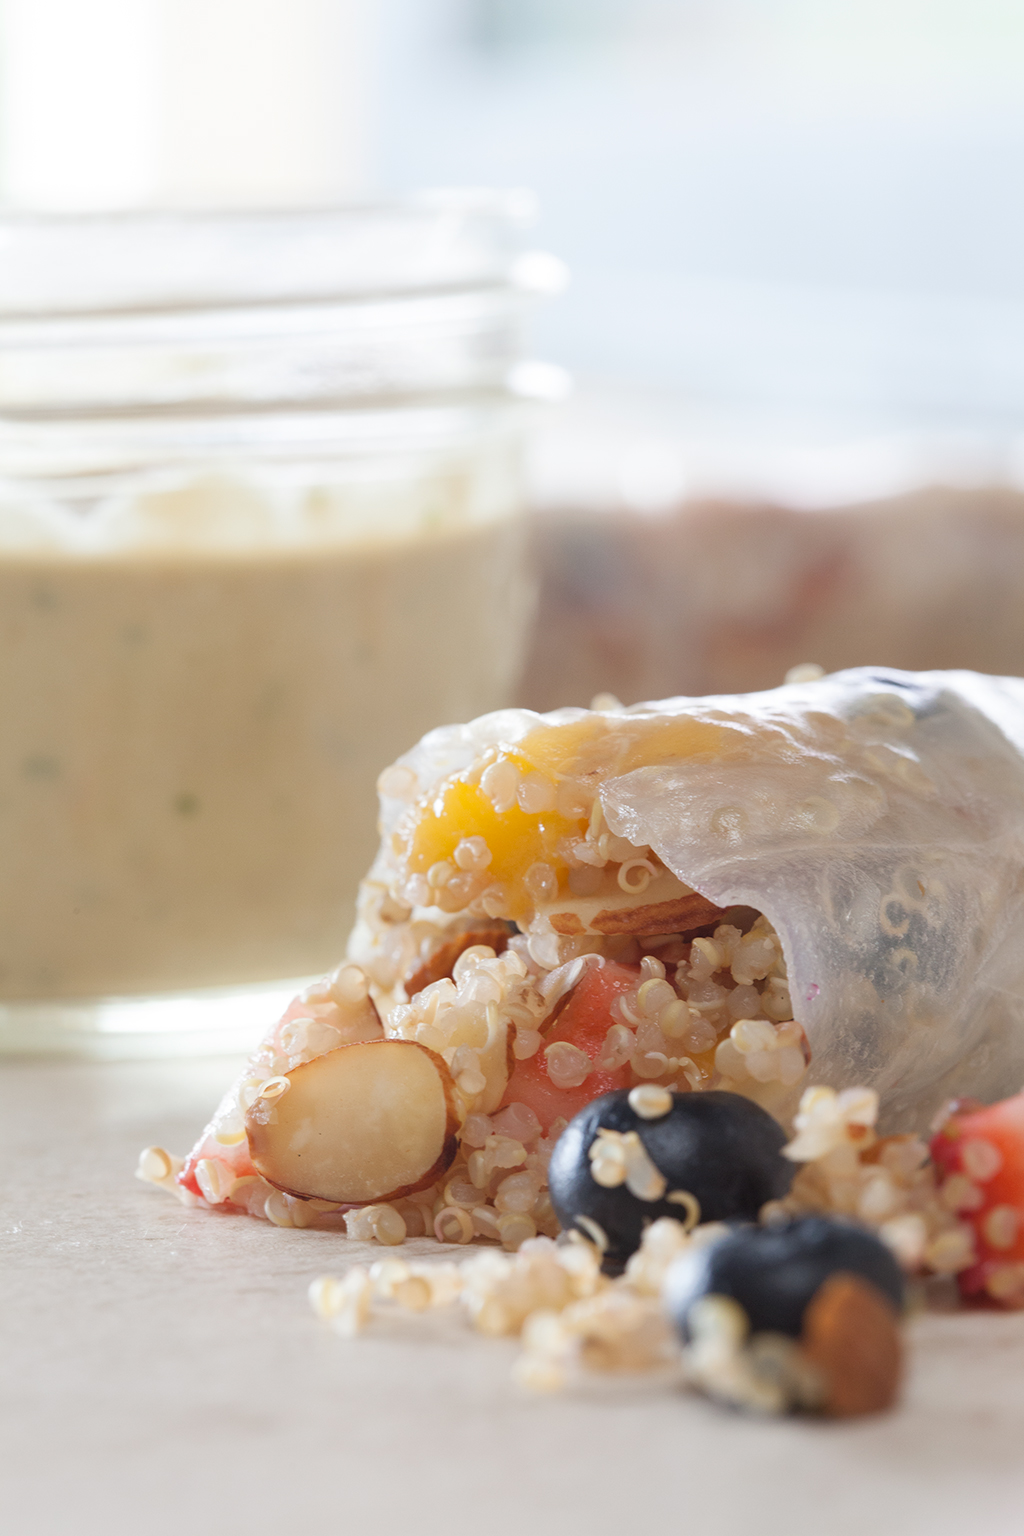 Strawberry Quinoa Spring Rolls with Mango and Mint Sauce